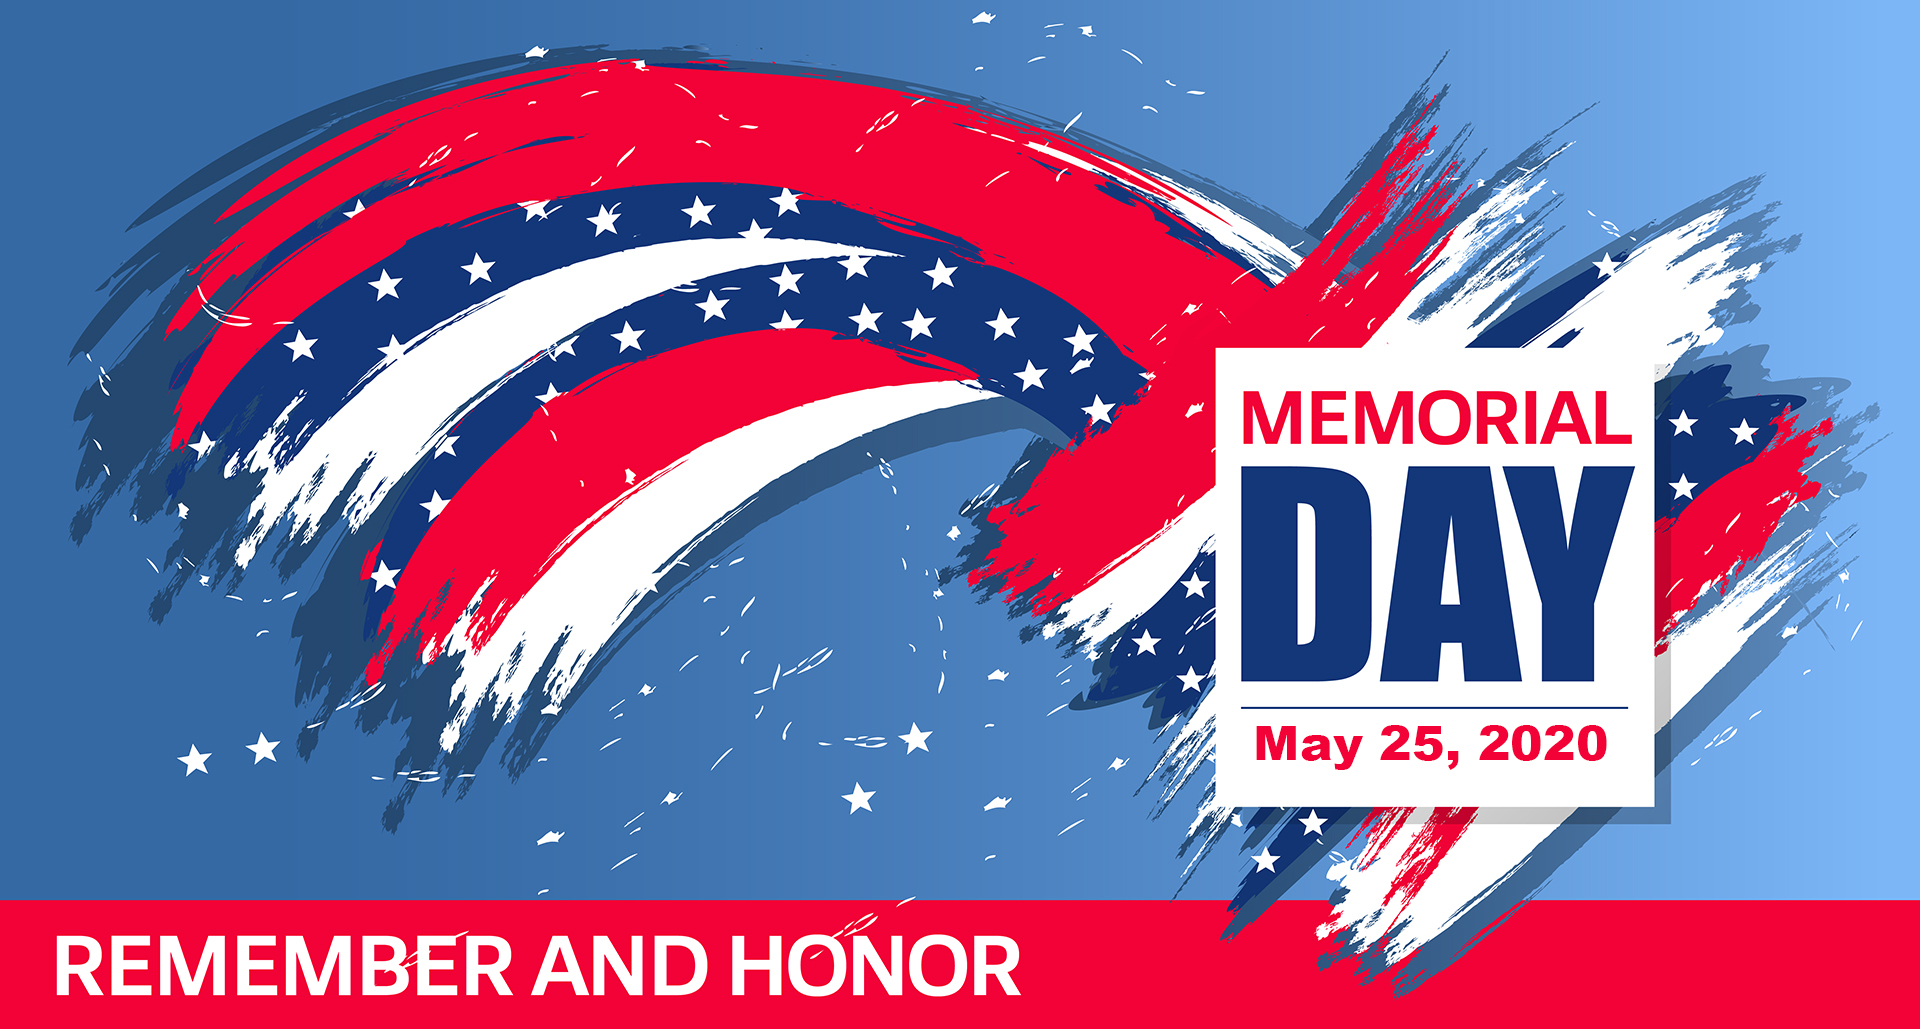 Memorial Day Graphic May 2020 Digital Signage